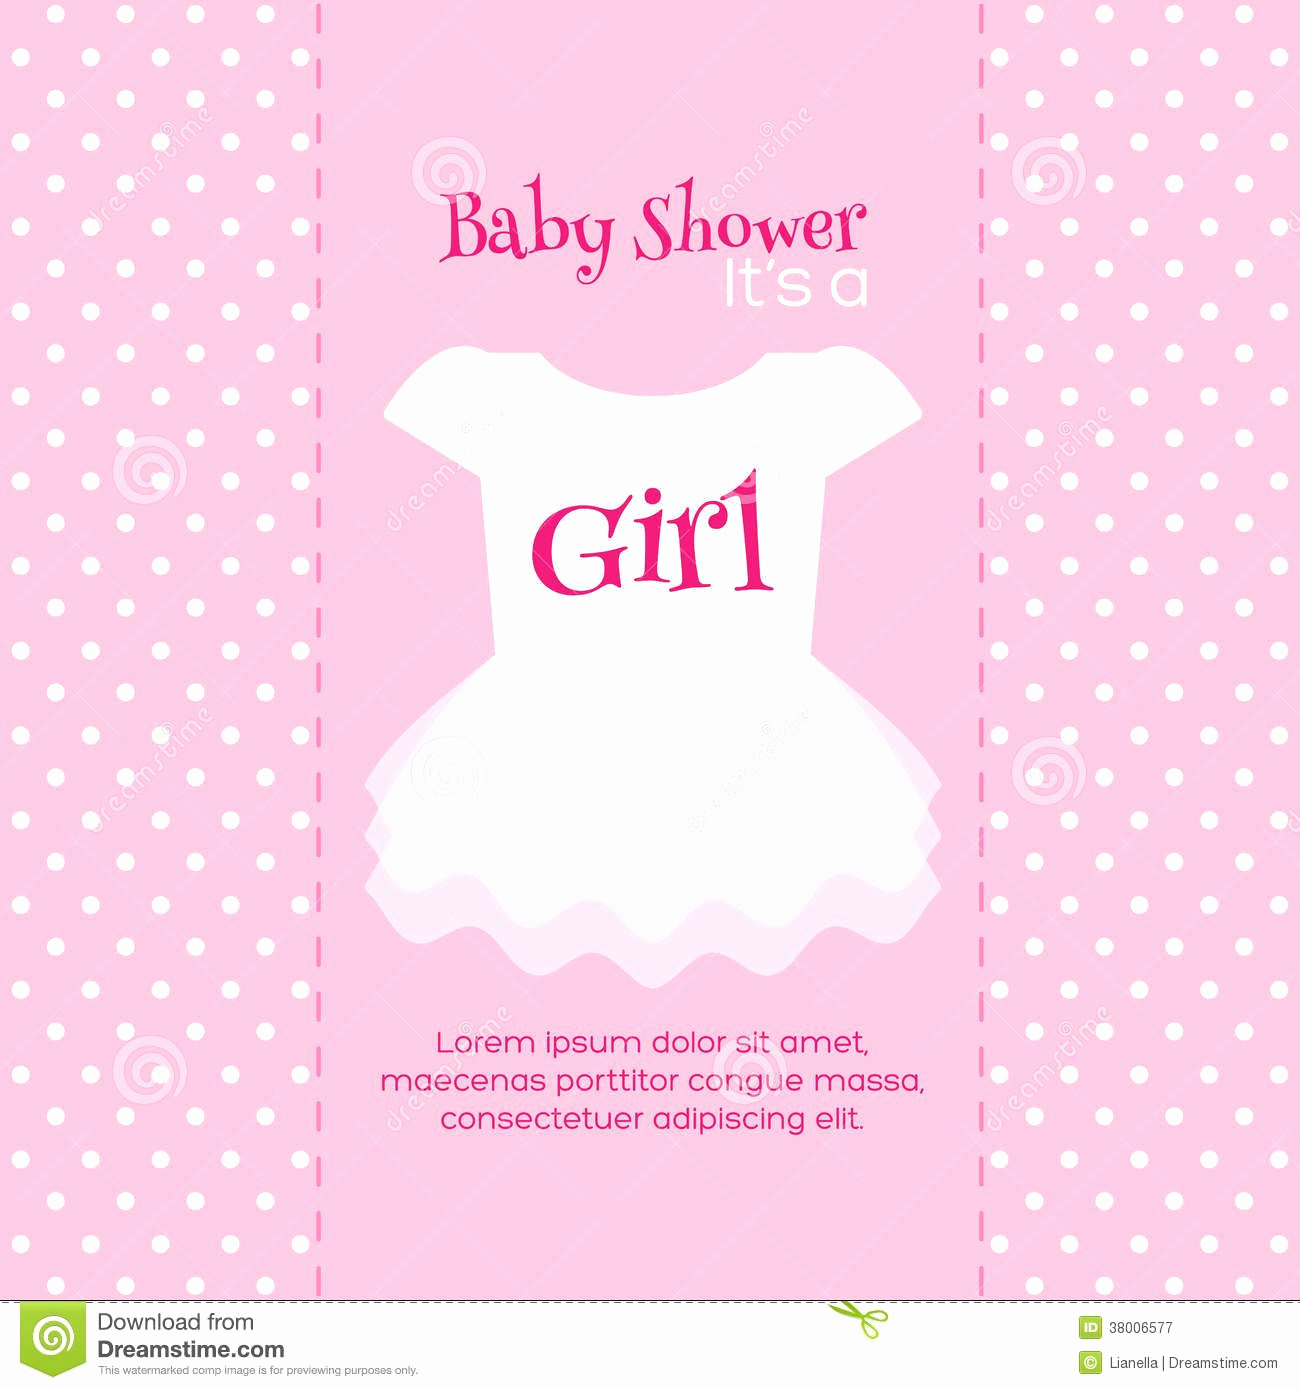 Diaper Shower Invitation Template Best Of Design Free Printable Baby Shower Invitations for Girls